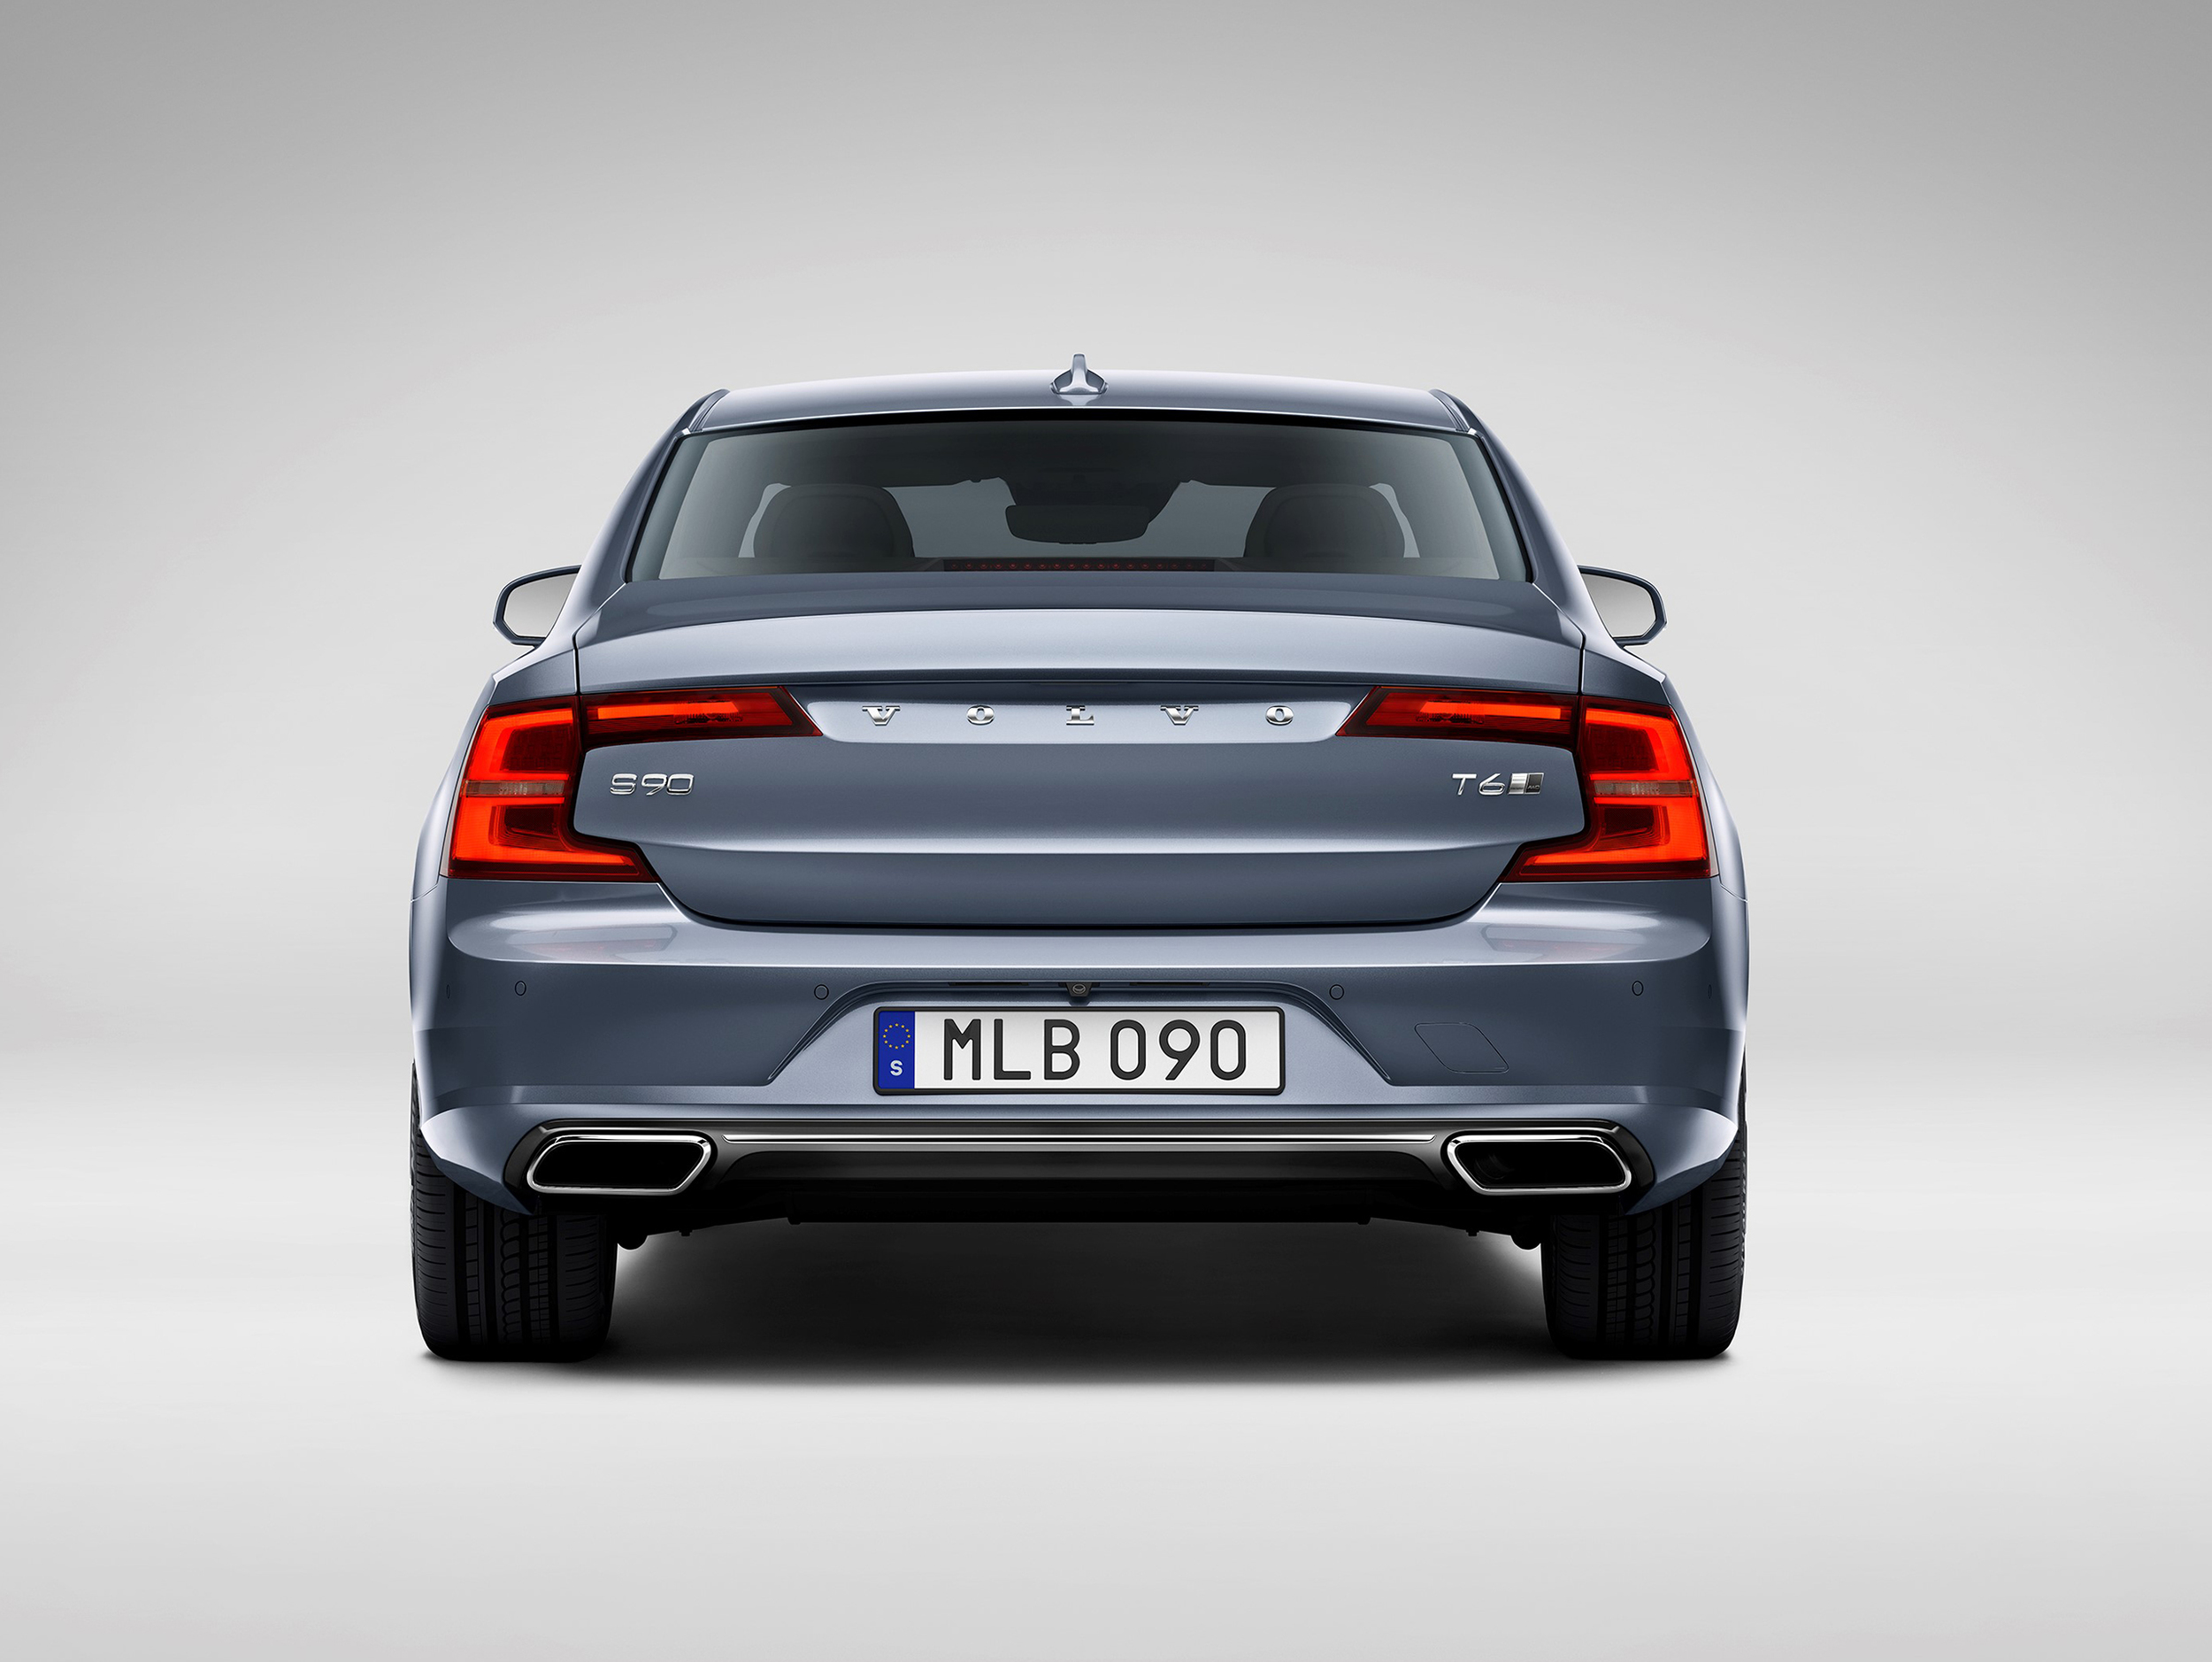 New Volvo S90 to debut in Detroit